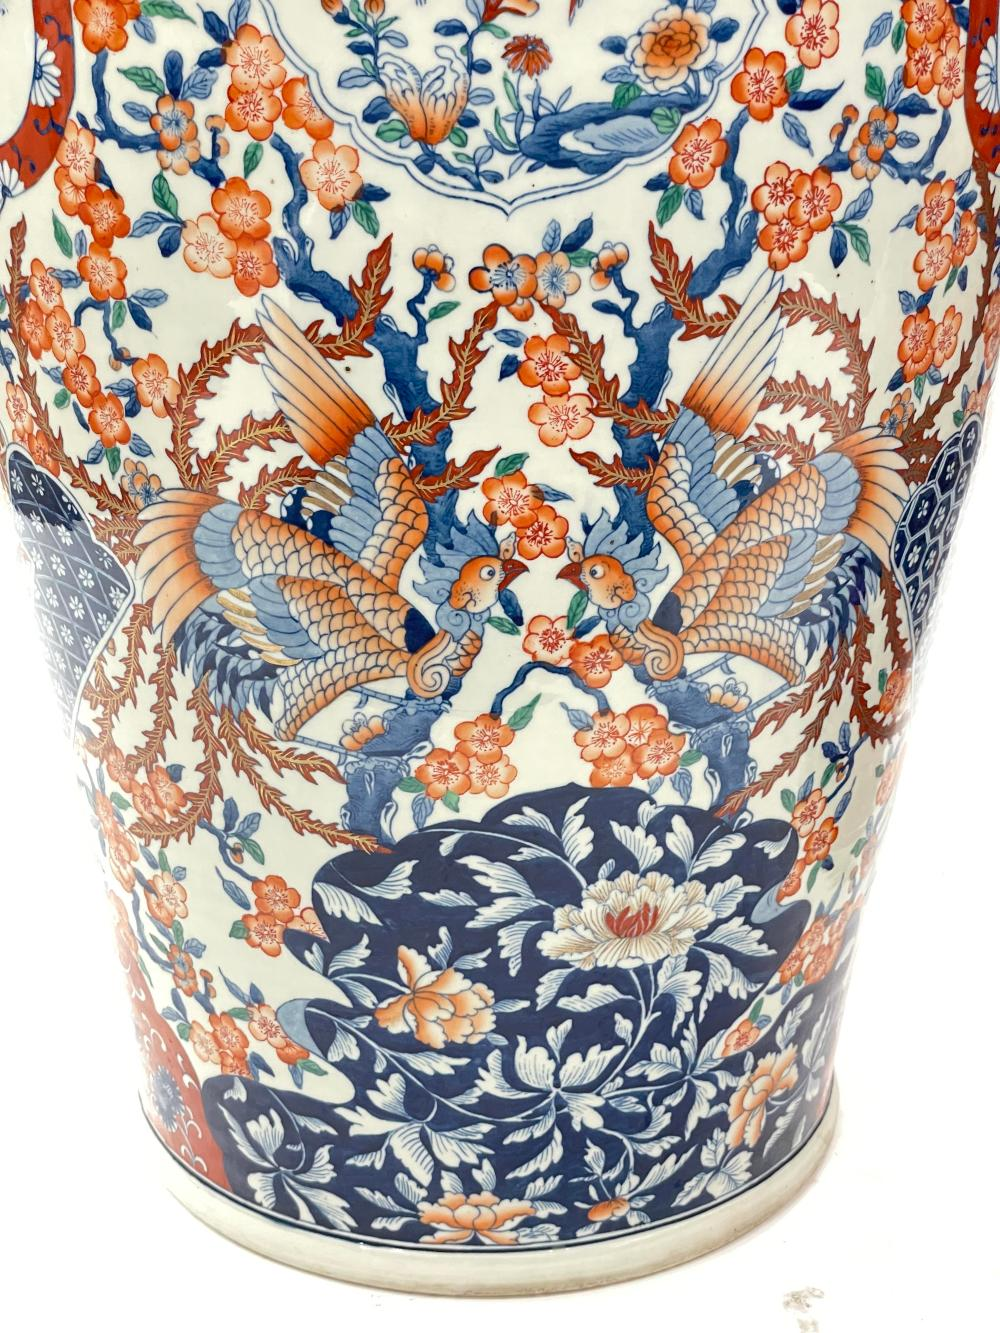 5FT! ANTIQUE PAIR OF MONUMENTAL JAPANESE HAND PAINTED IMARI FLORAL VASES INCLUDES APPRAISAL